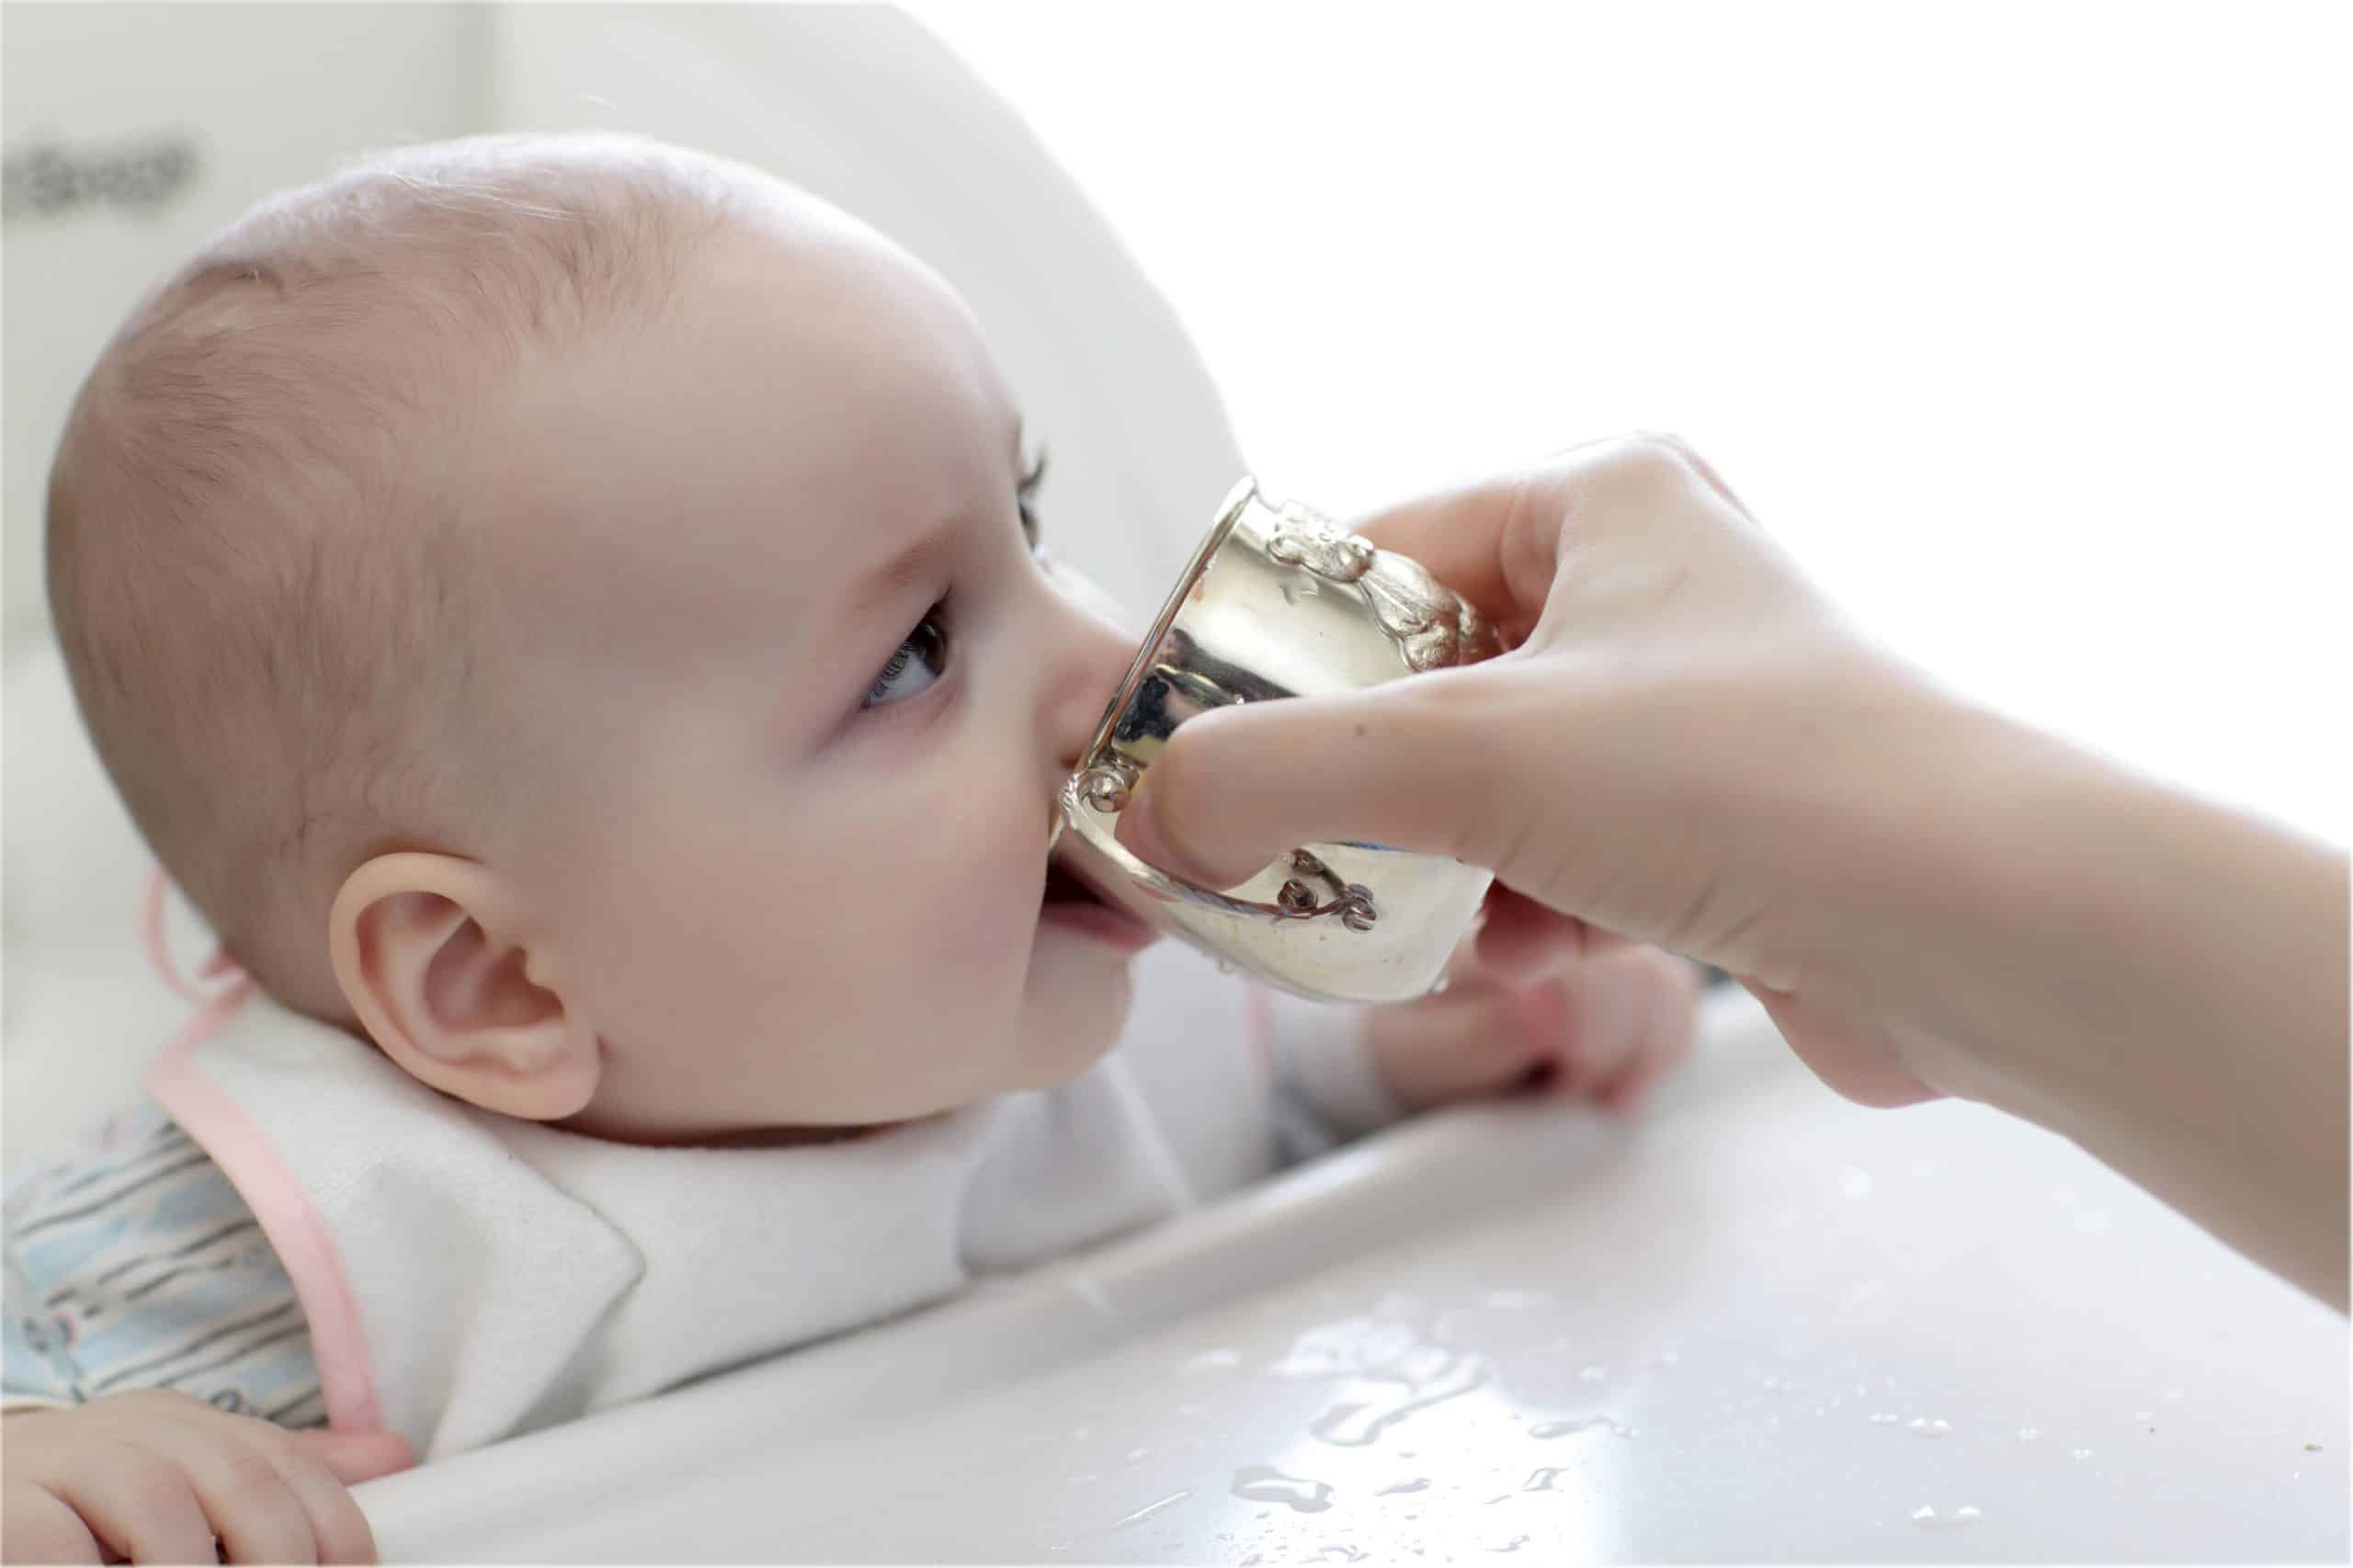 causcasian baby drinking from a cup